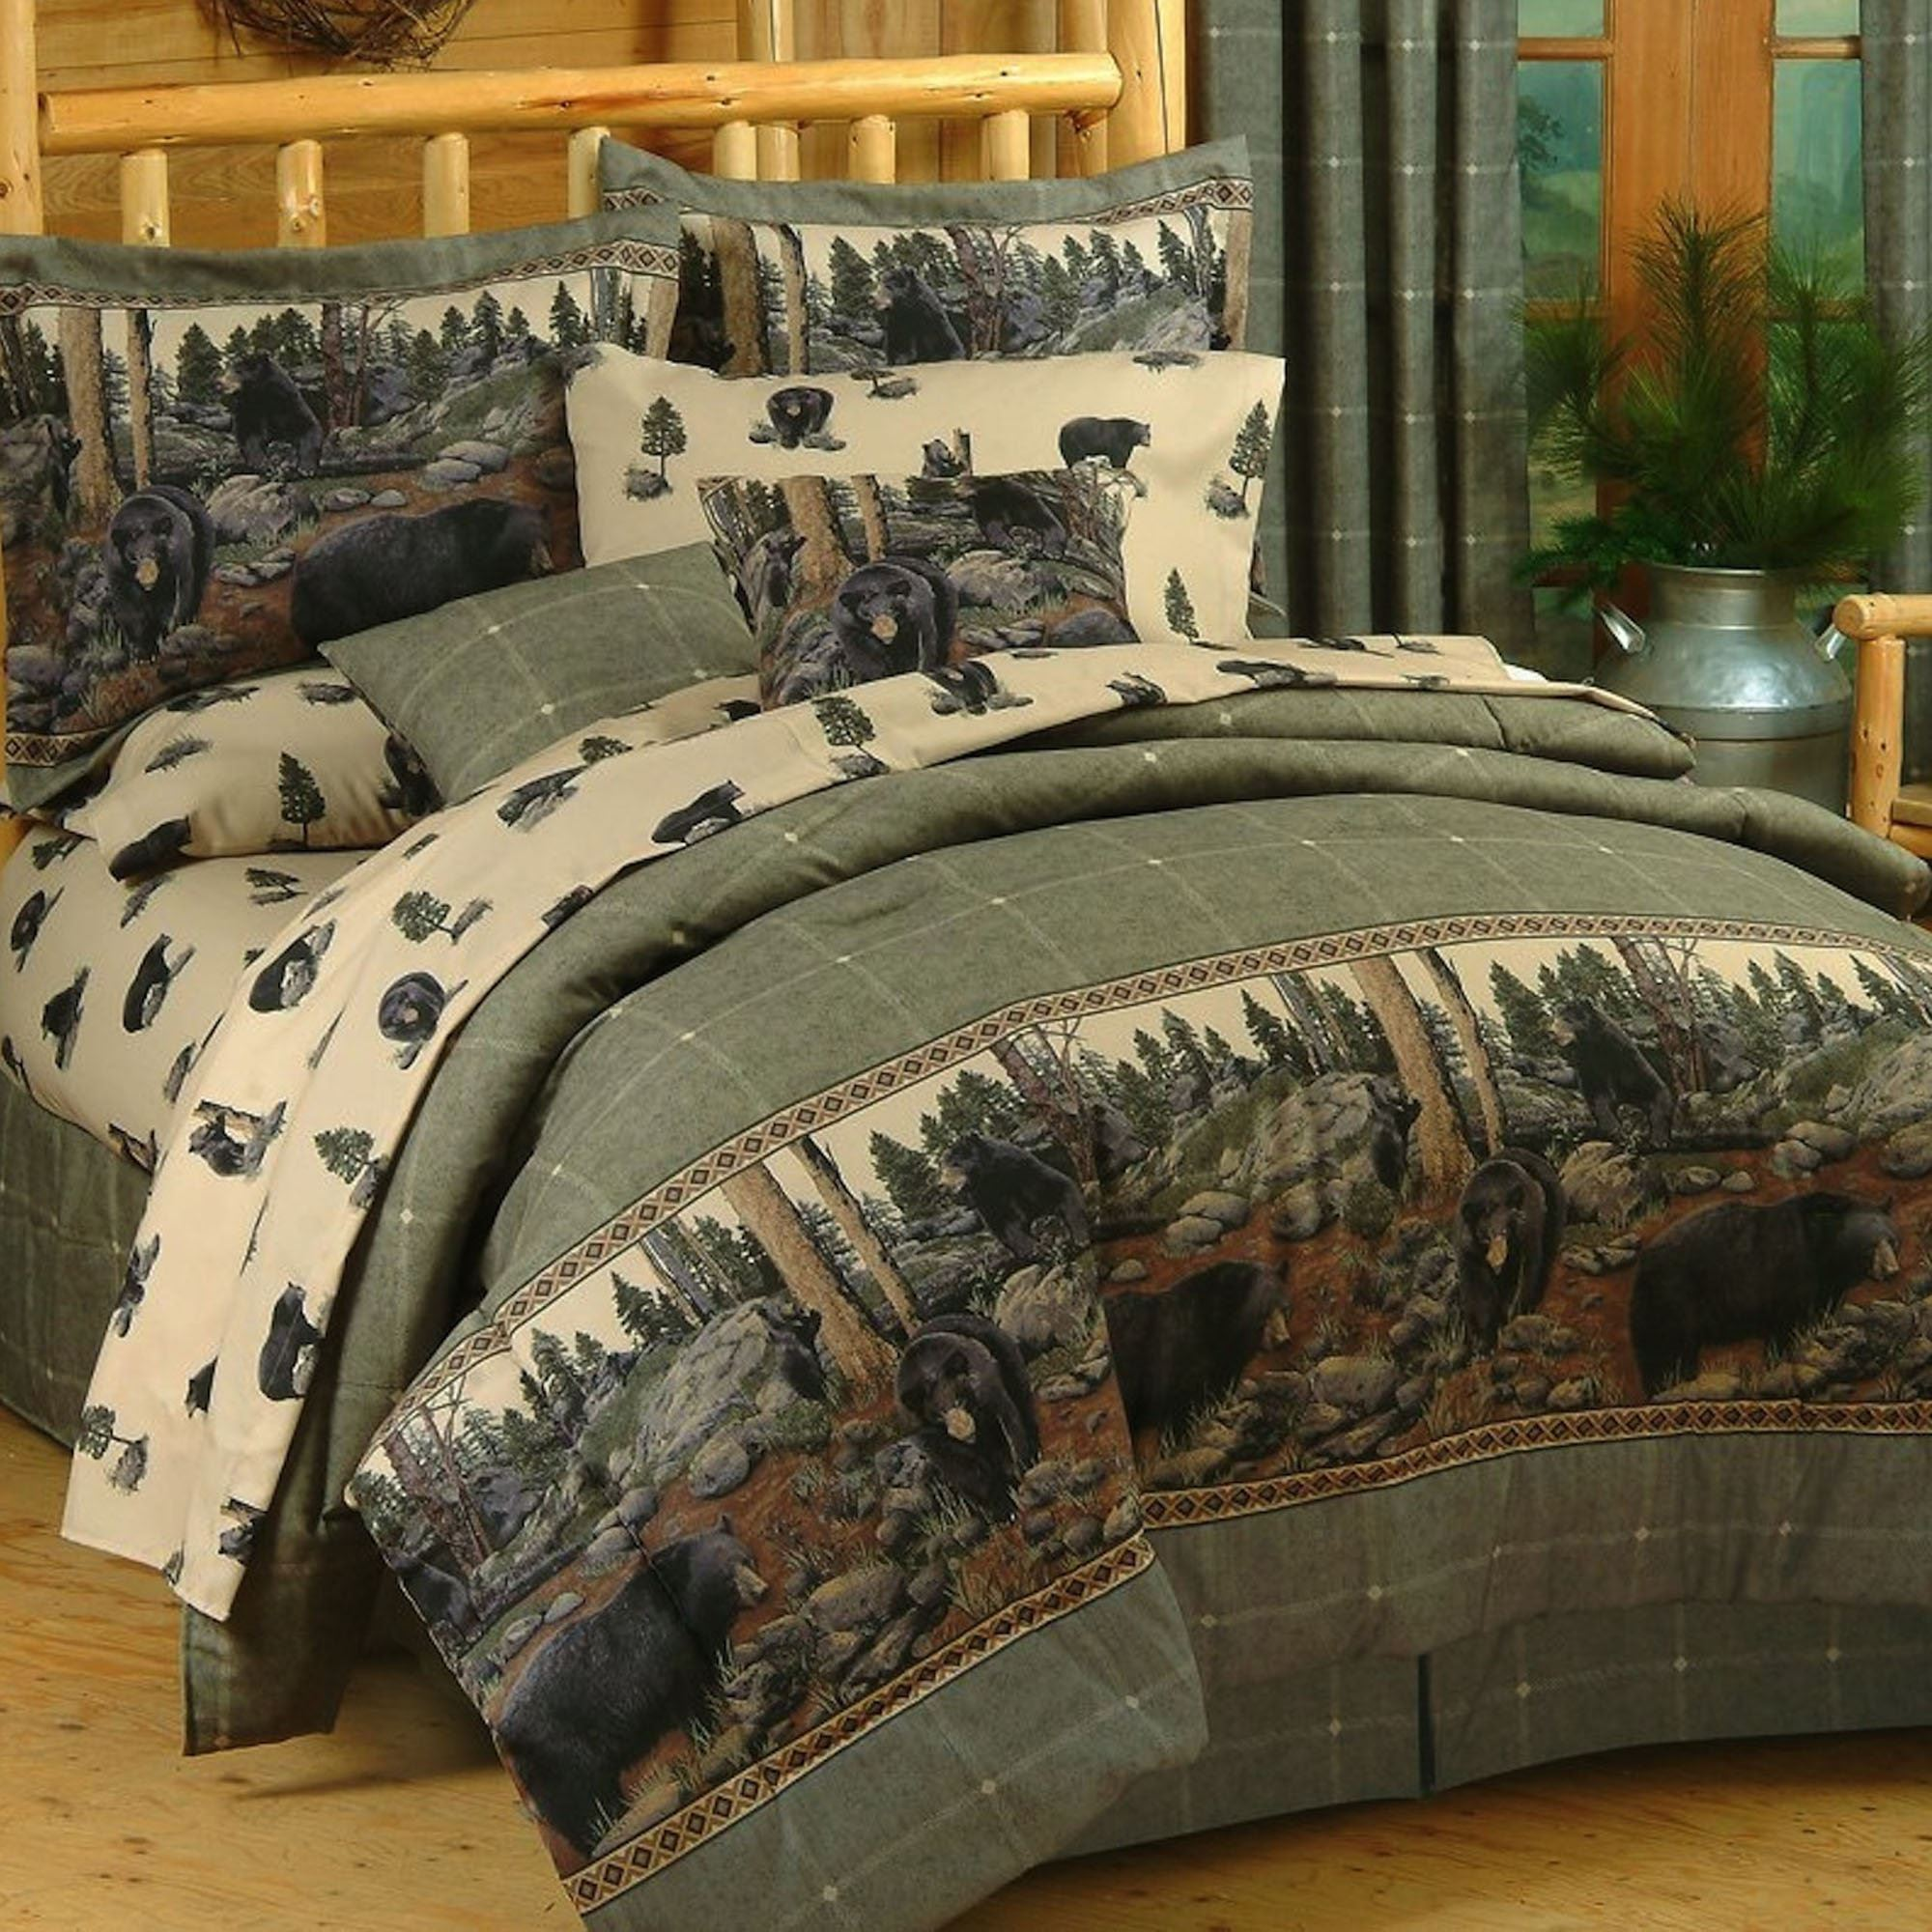 sets guidings co us comforter king espan rustic